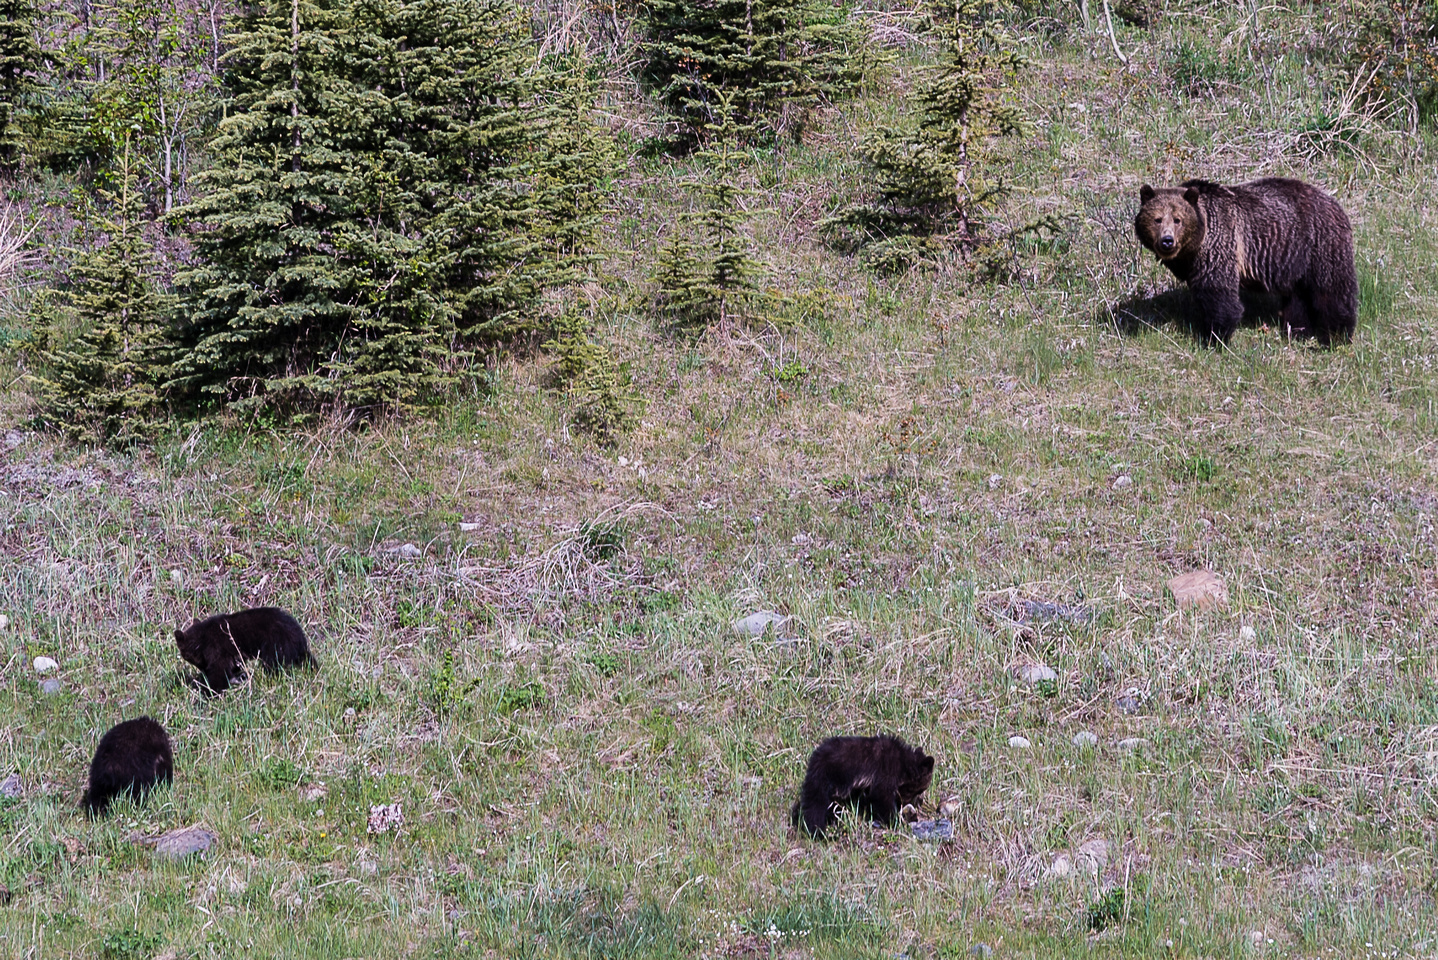 Mamma Grizzly bear and cubs.